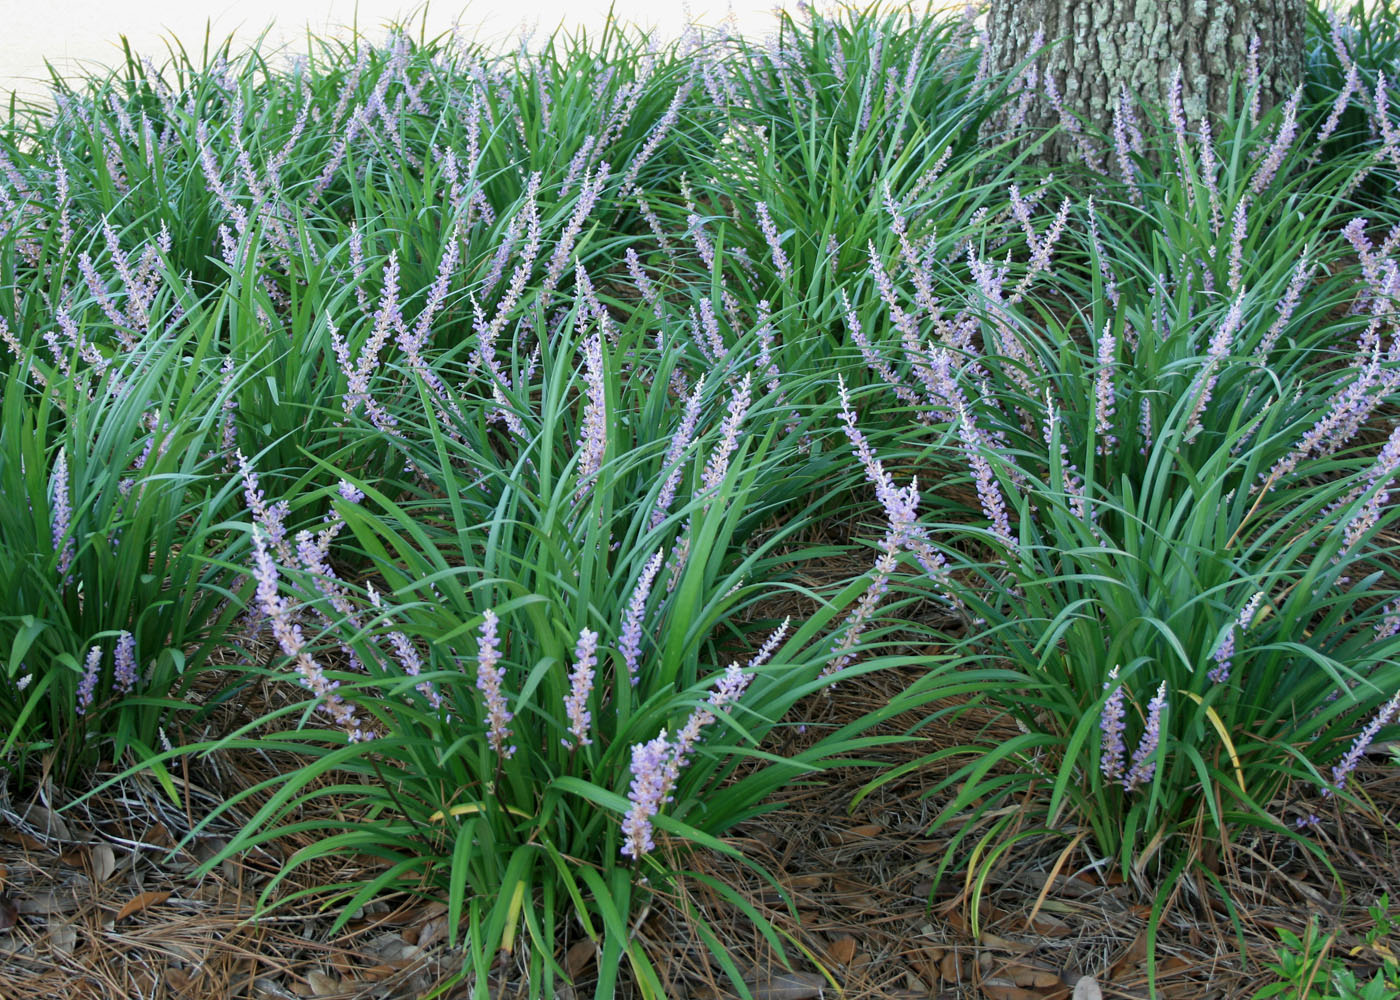 Liriope Thrives In Full Sun Or Shade Providing A Versatile Groundcover Under Trees